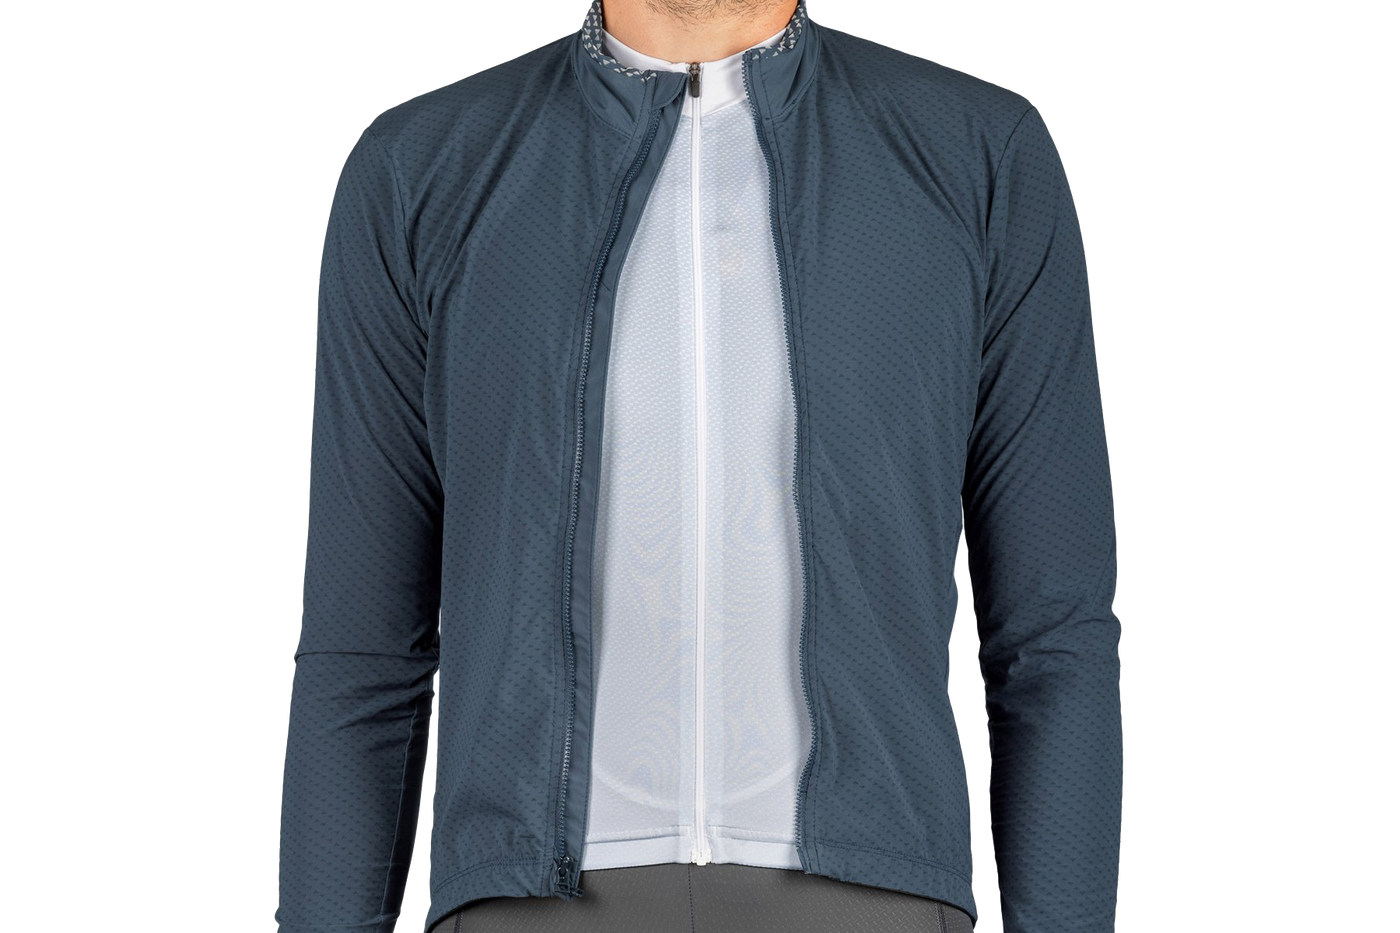 ORNOT's New Micro Climate Jacket